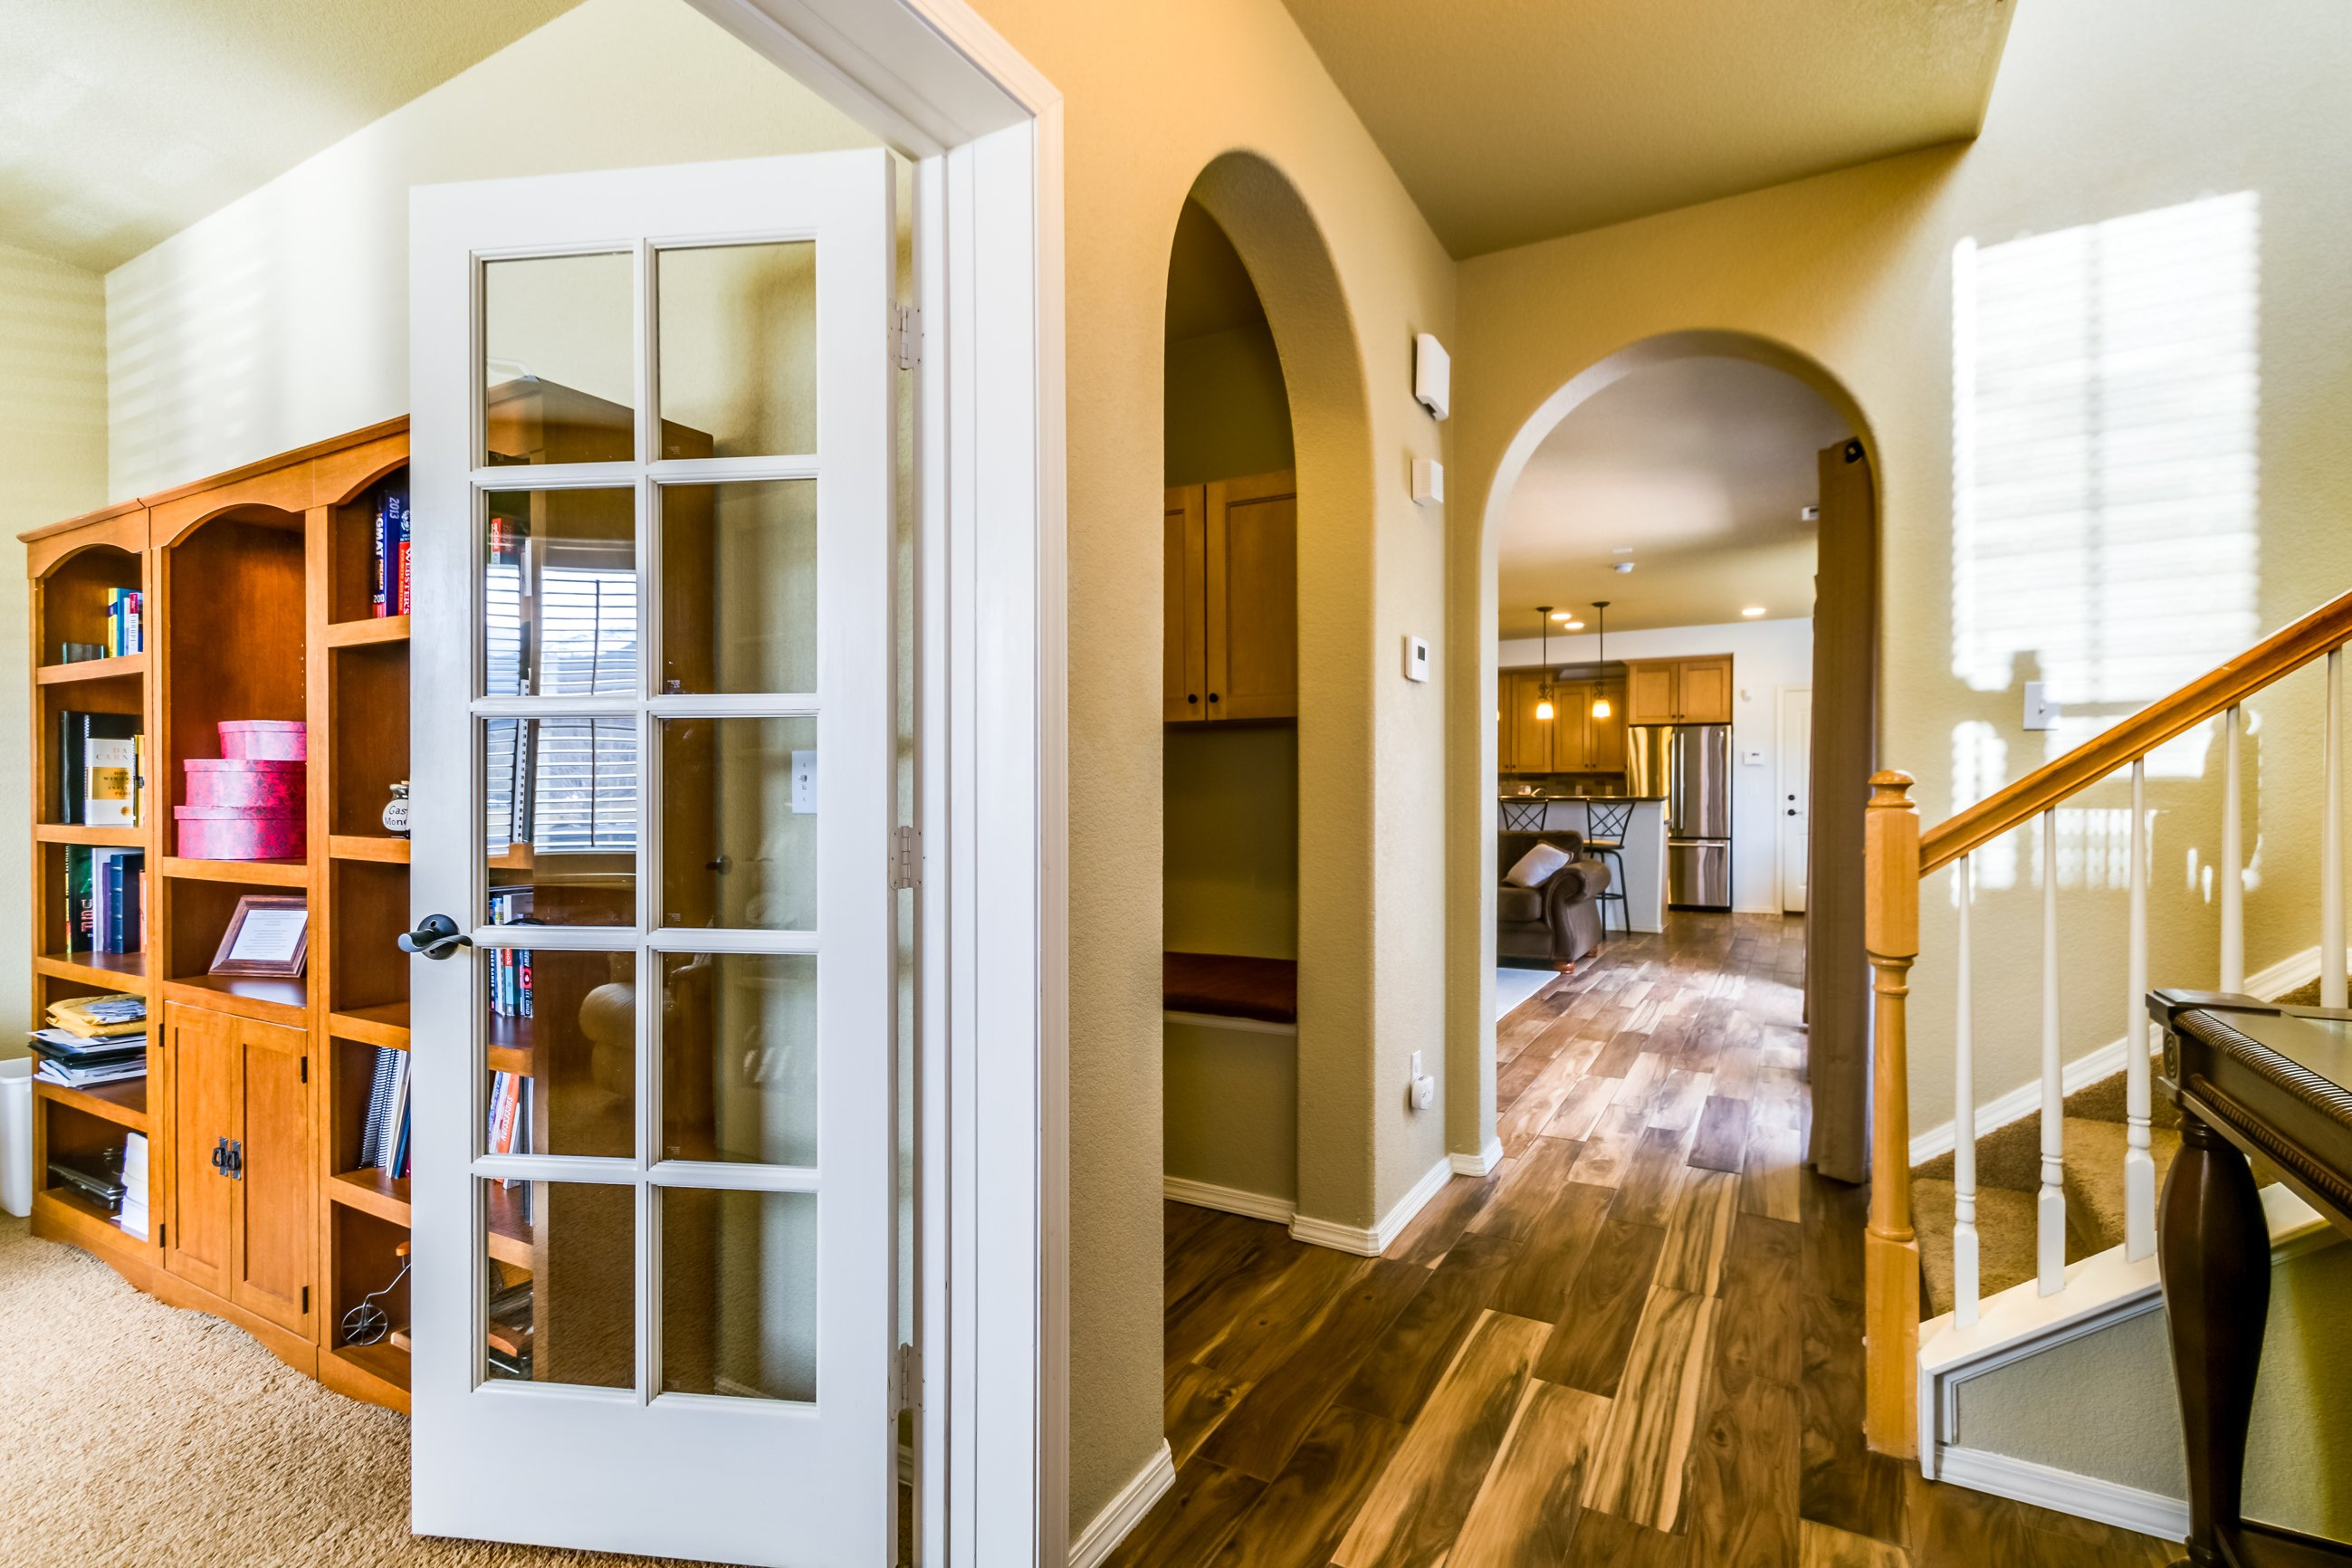 Gold Hill Mesa condo for sale, picture of hallway on main level